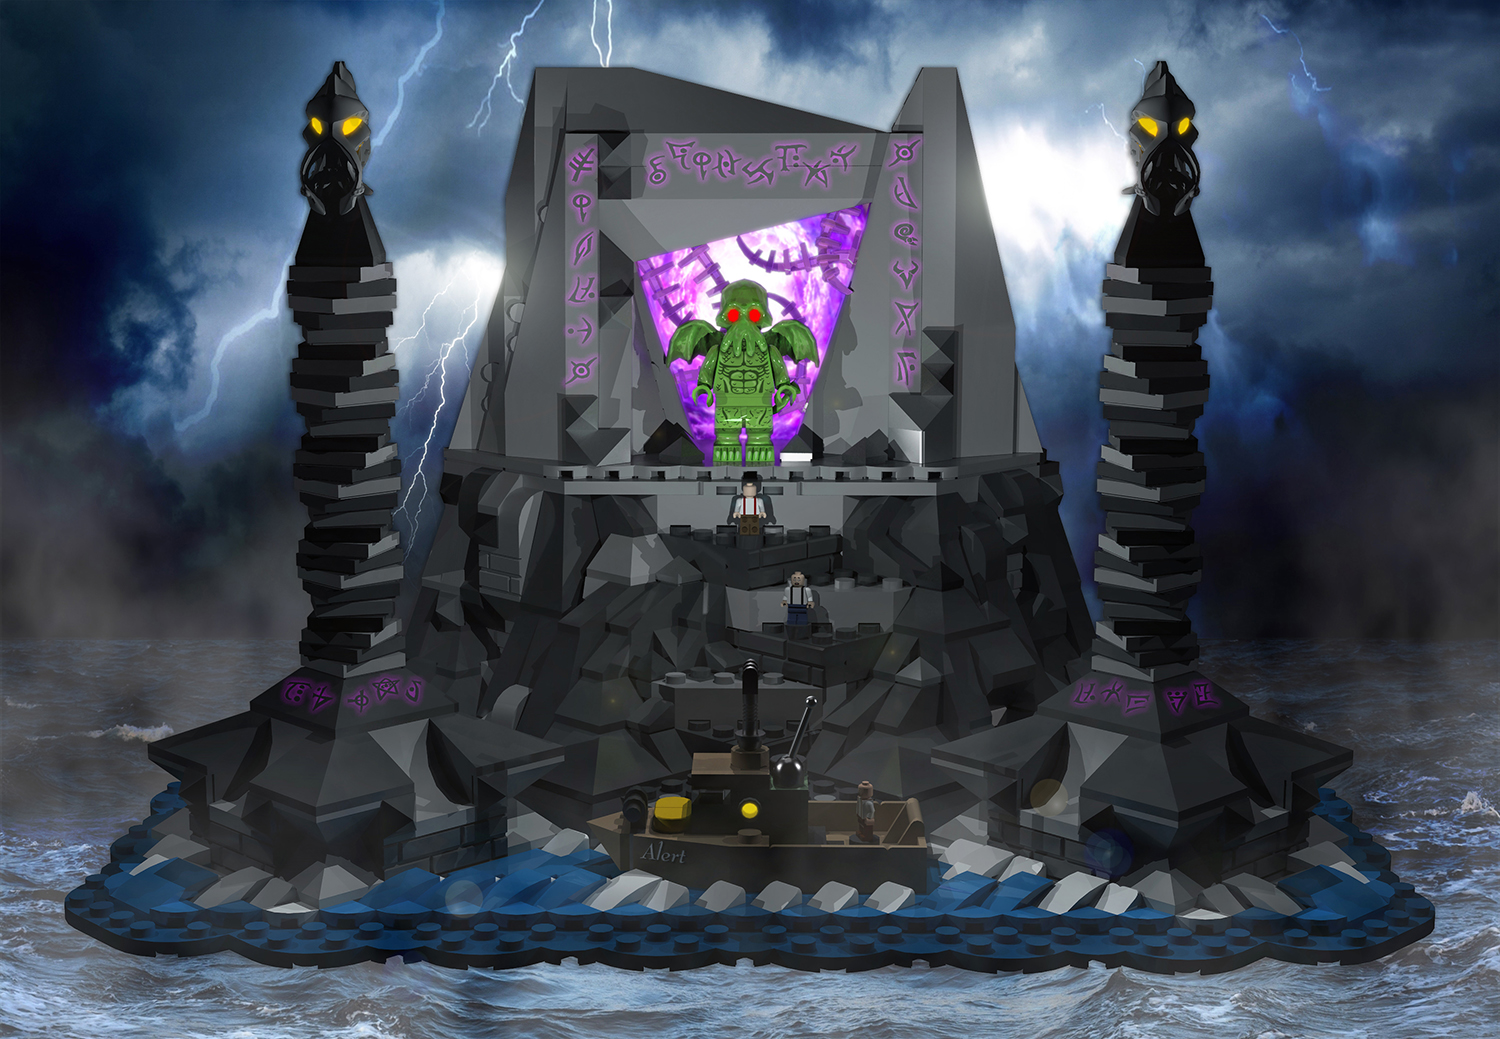 the_call_of_cthulhu___lego_ideas_project